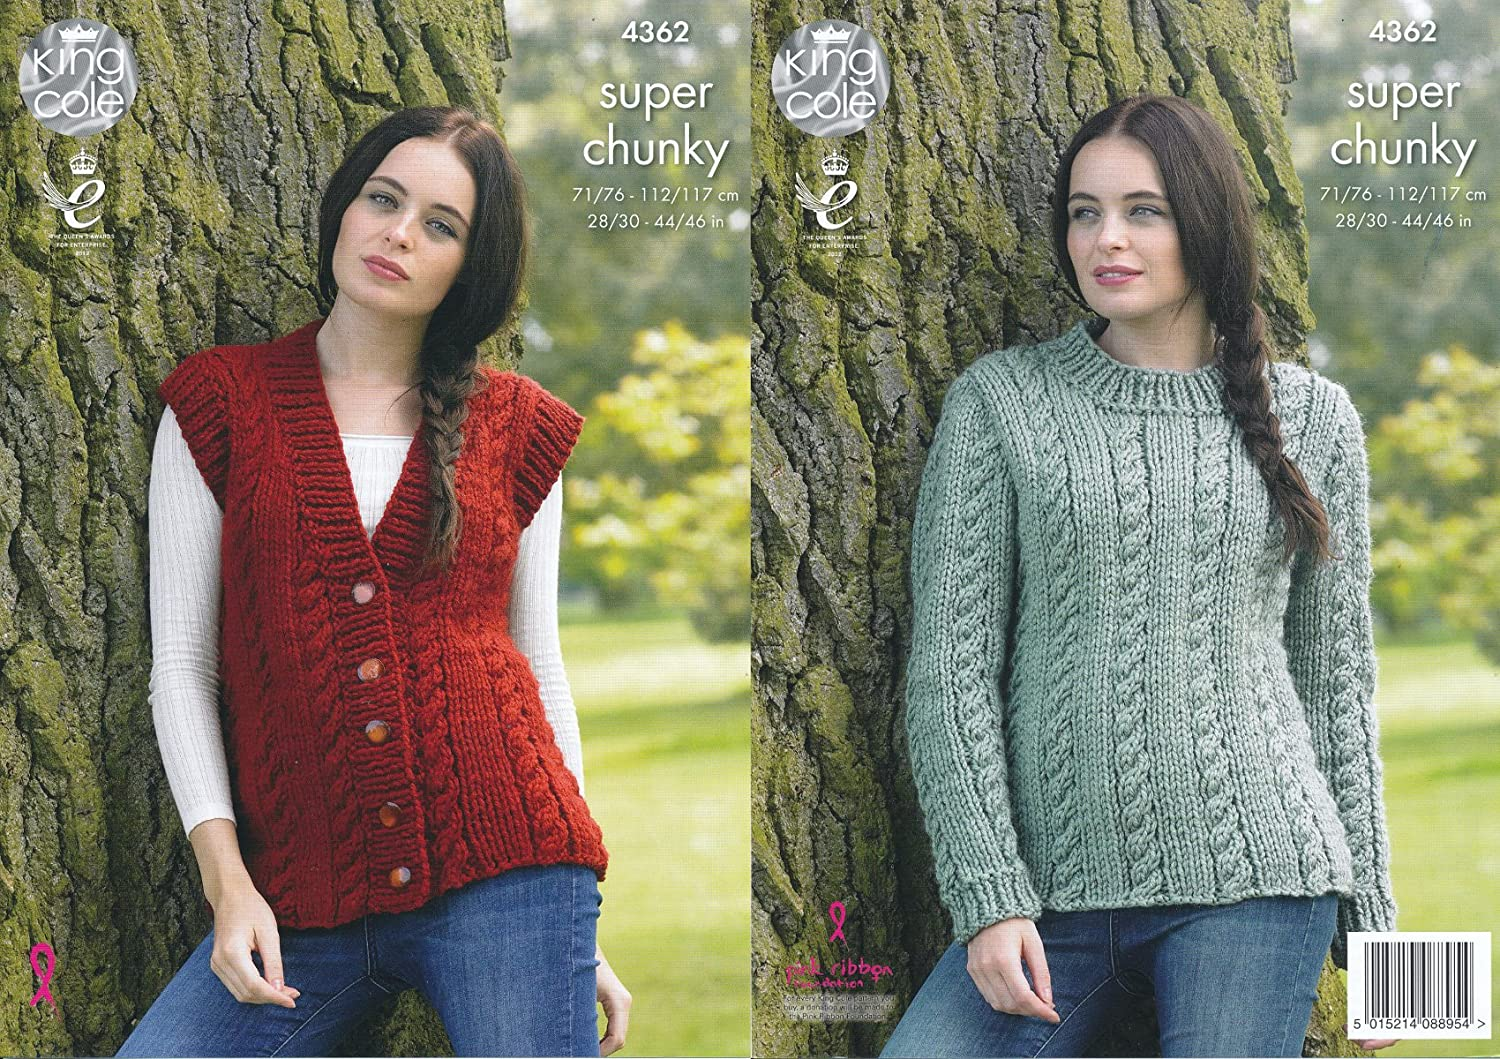 King Cole Ladies Big Value Super Chunky Knitting Pattern Cable Knit Sweater & Waistcoat (4362)